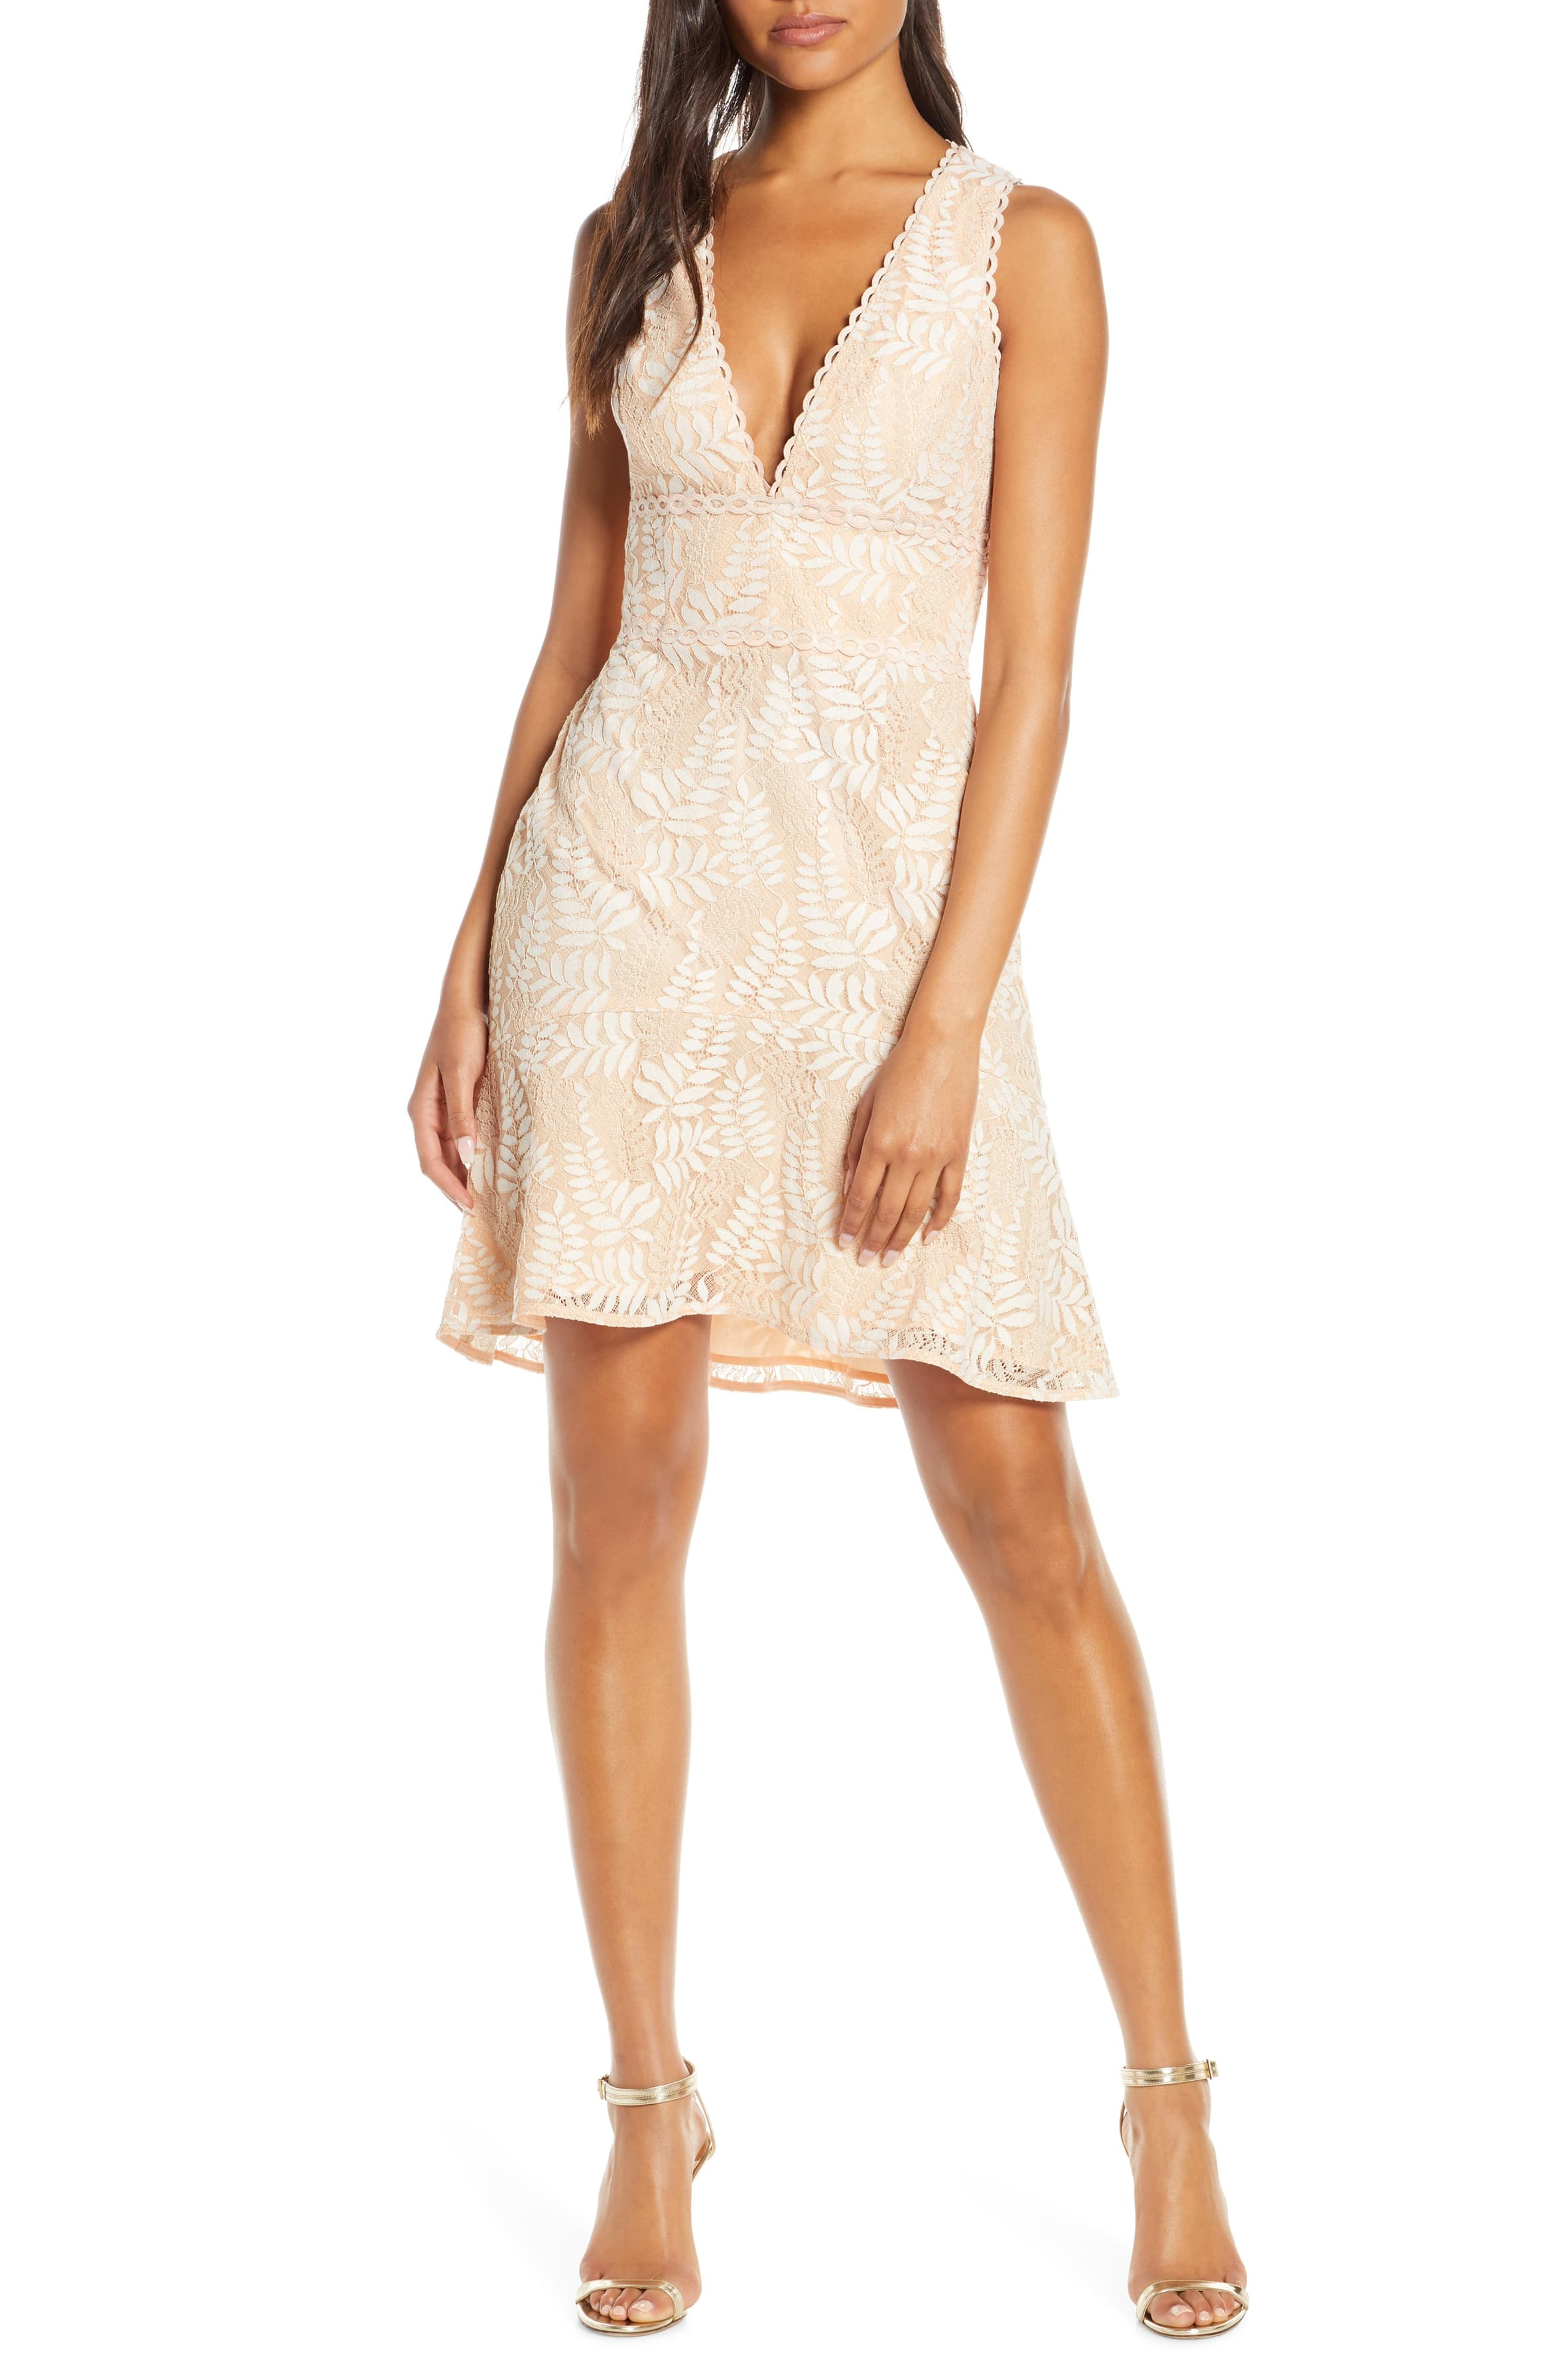 Adelyn Rae Hazel Plunging V Neck Lace Cocktail Dress Nordstrom Cocktail Dress Lace Cocktail Dress Fashion Clothes Women [ 3588 x 2340 Pixel ]